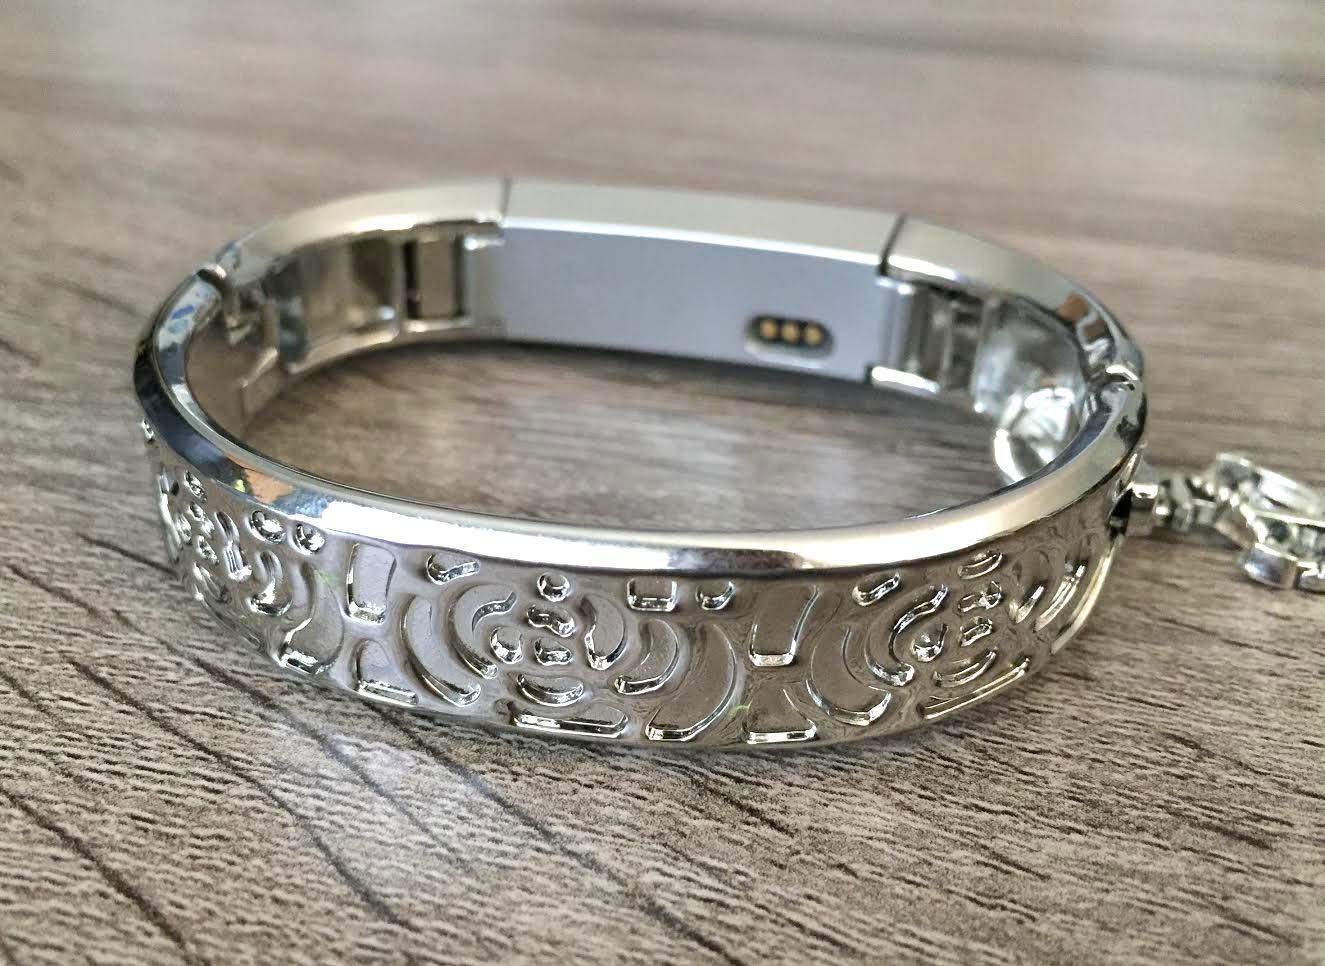 Silver Metal Band For Fitbit Alta /& Alta HR Fitness Activity Tracker Handmade Flowers Design Bangle Fitbit Alta HR Bracelet Silver Hope Cancer Awareness Ribbon Jewelry Charm Fitbit Alta Band